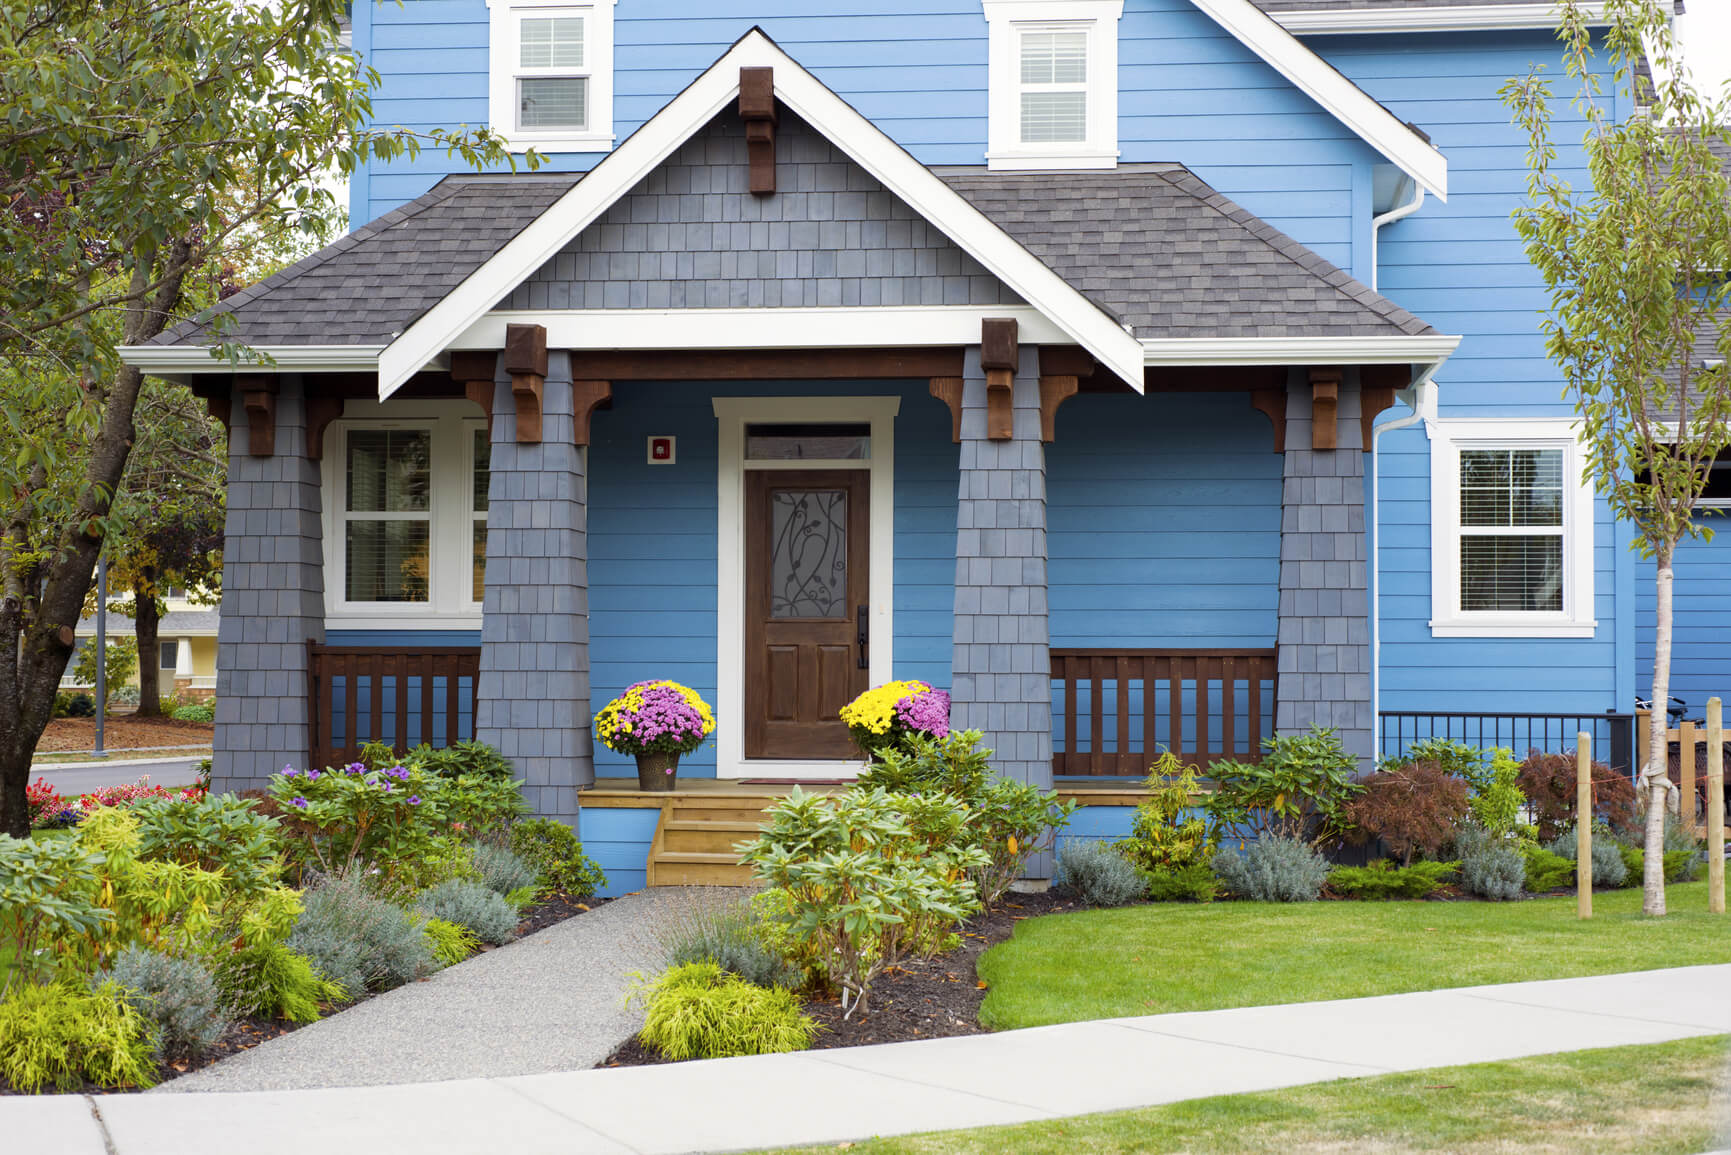 Budget friendly curb appeal ideas for Homes on a budget